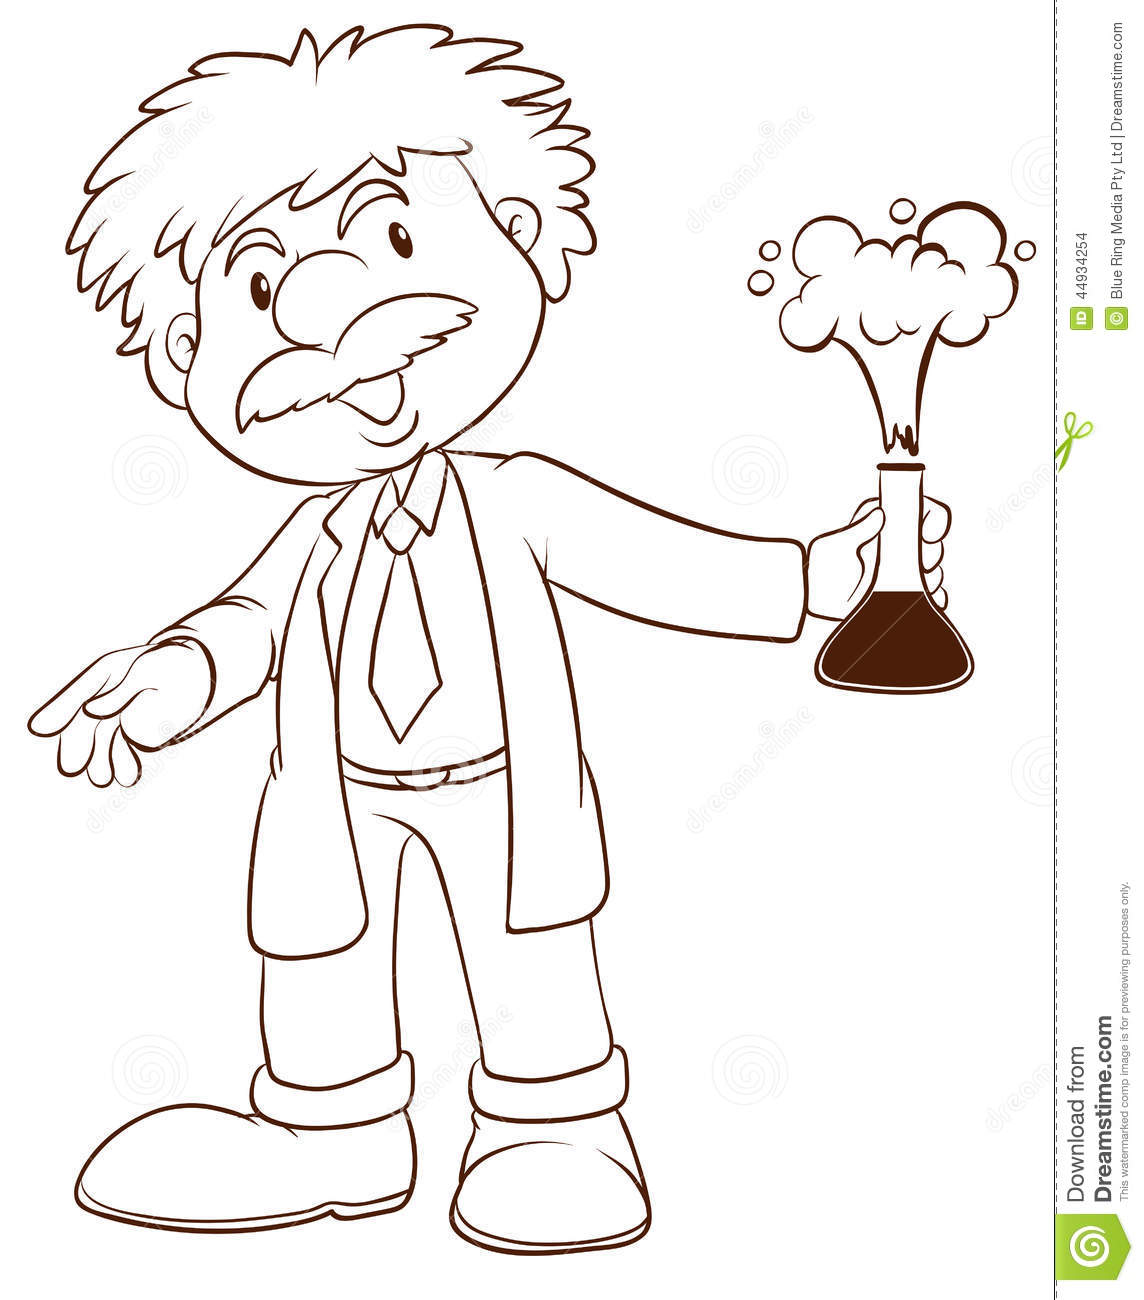 A Simple Sketch Of A Scientist Stock Vector - Image: 44934254